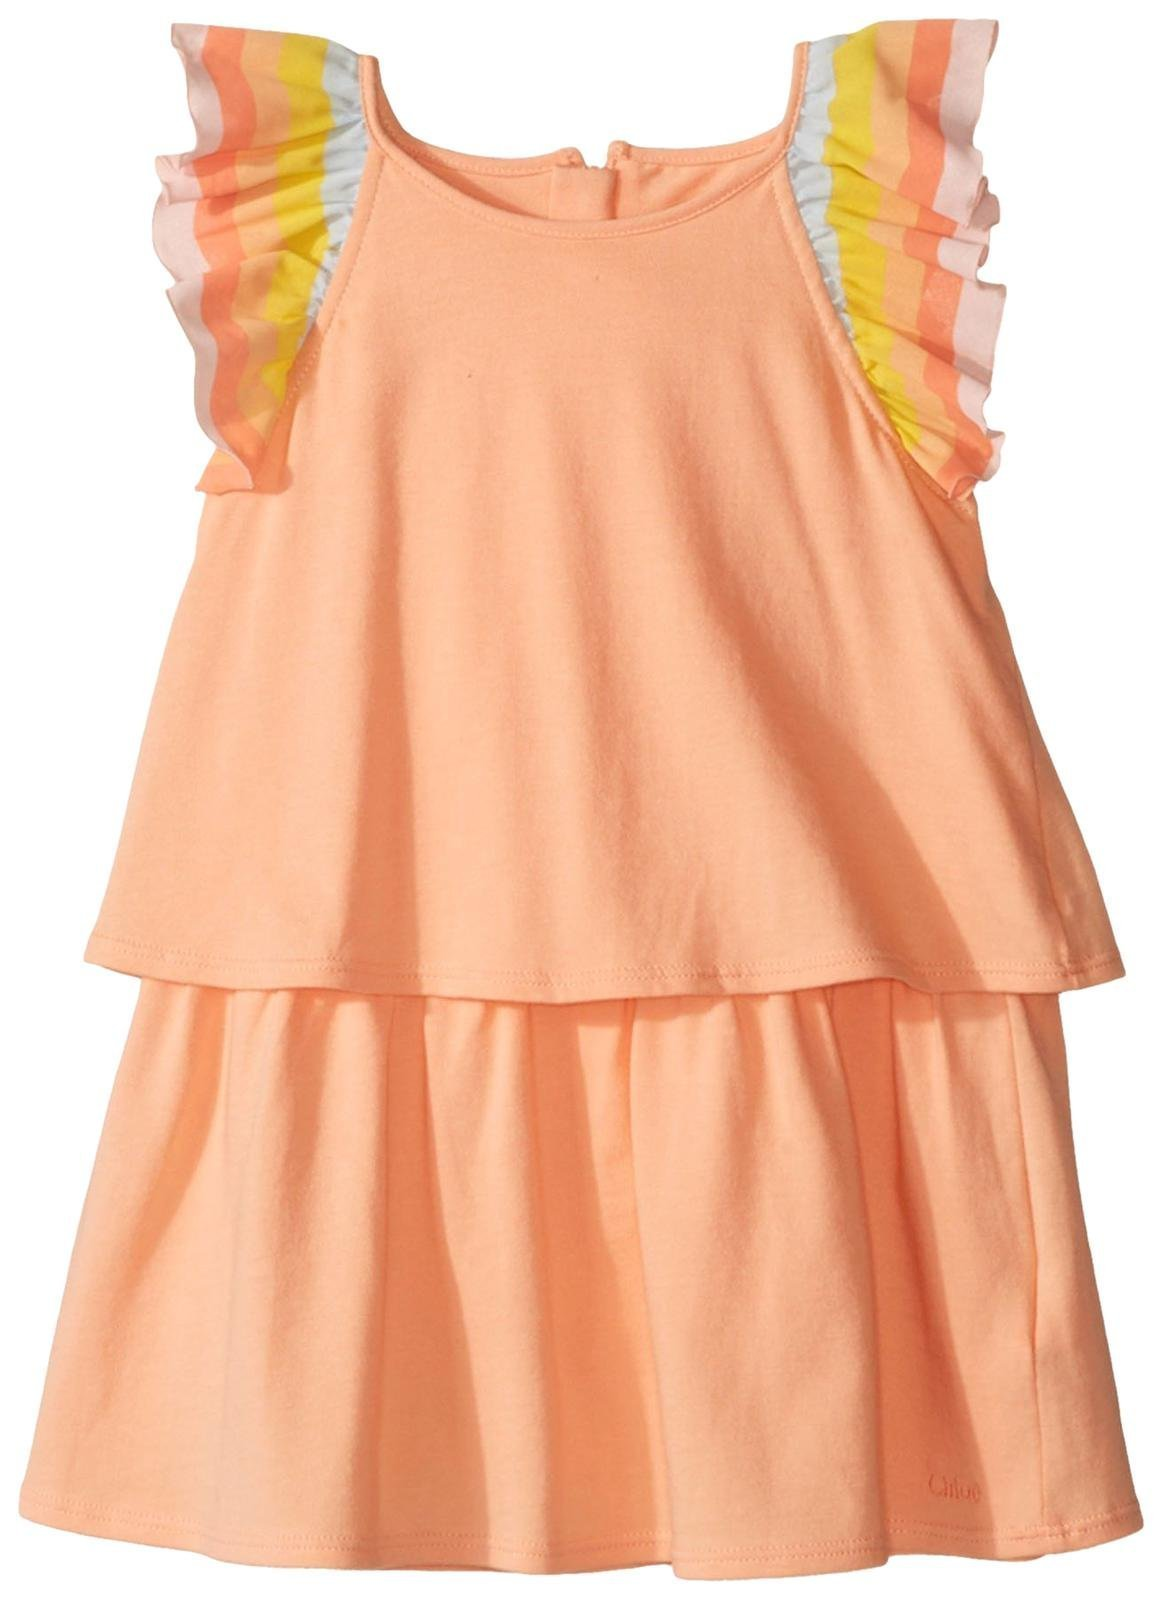 Chloe Baby Girls' Rainbow Ruffles Dress Infant, Sorbet, 18M